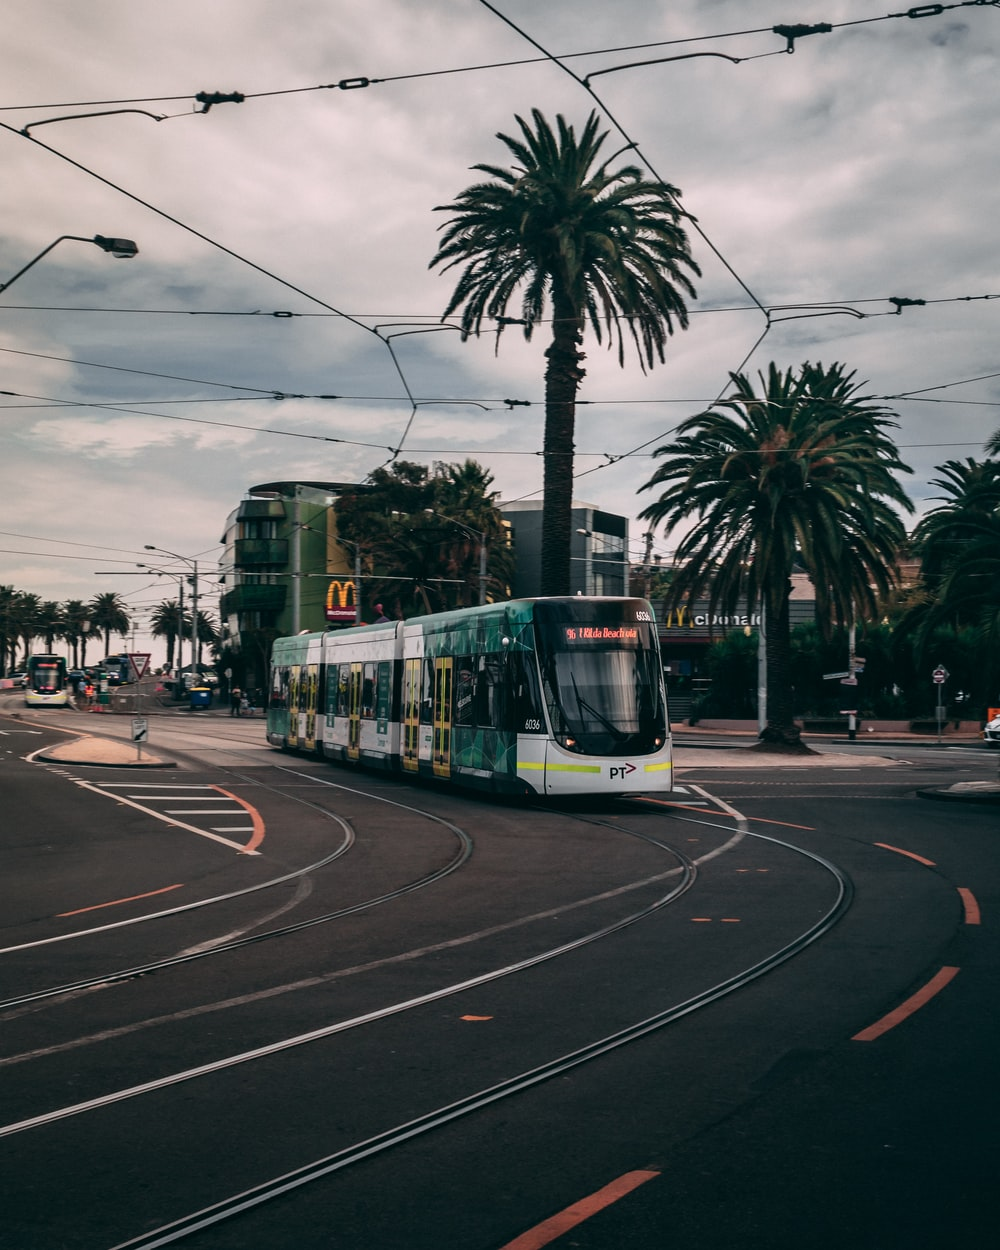 green and white tram on road during daytime